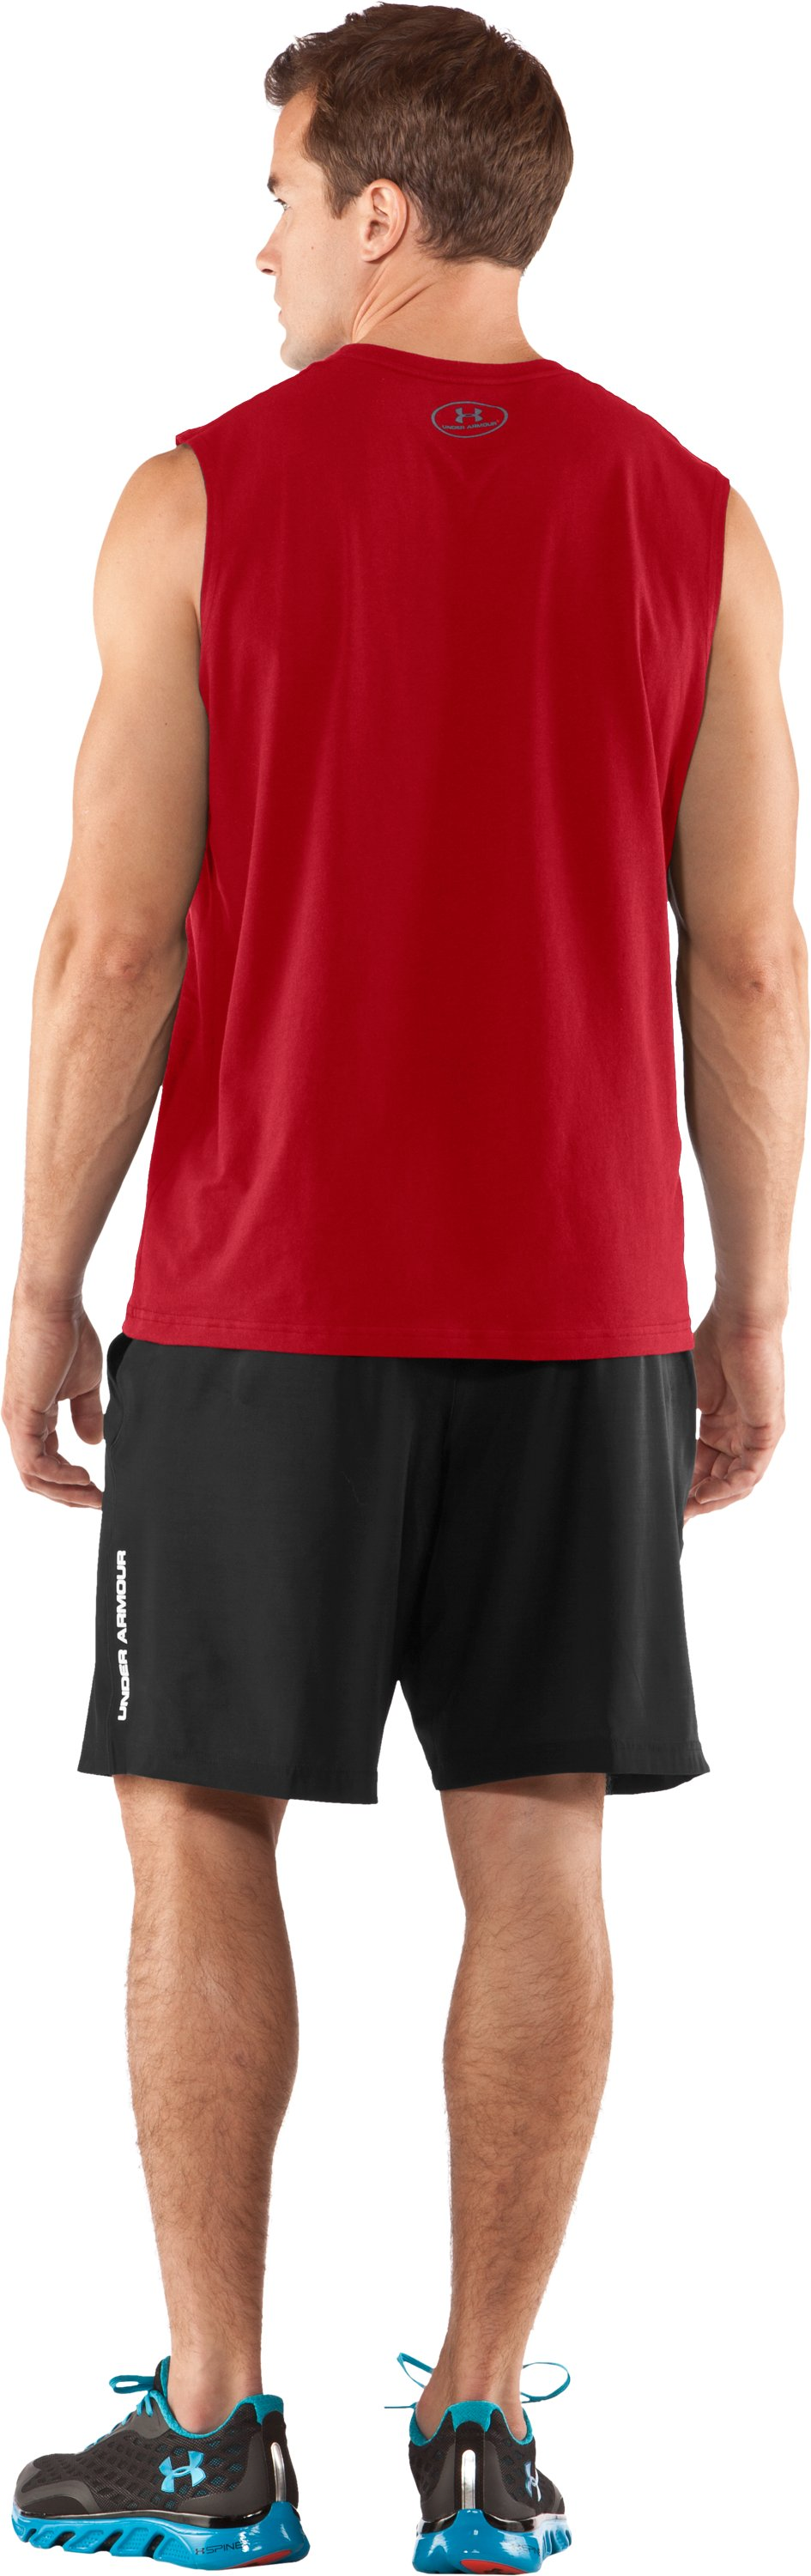 Men's Charged Cotton® Sleeveless T-shirt, Red, Back